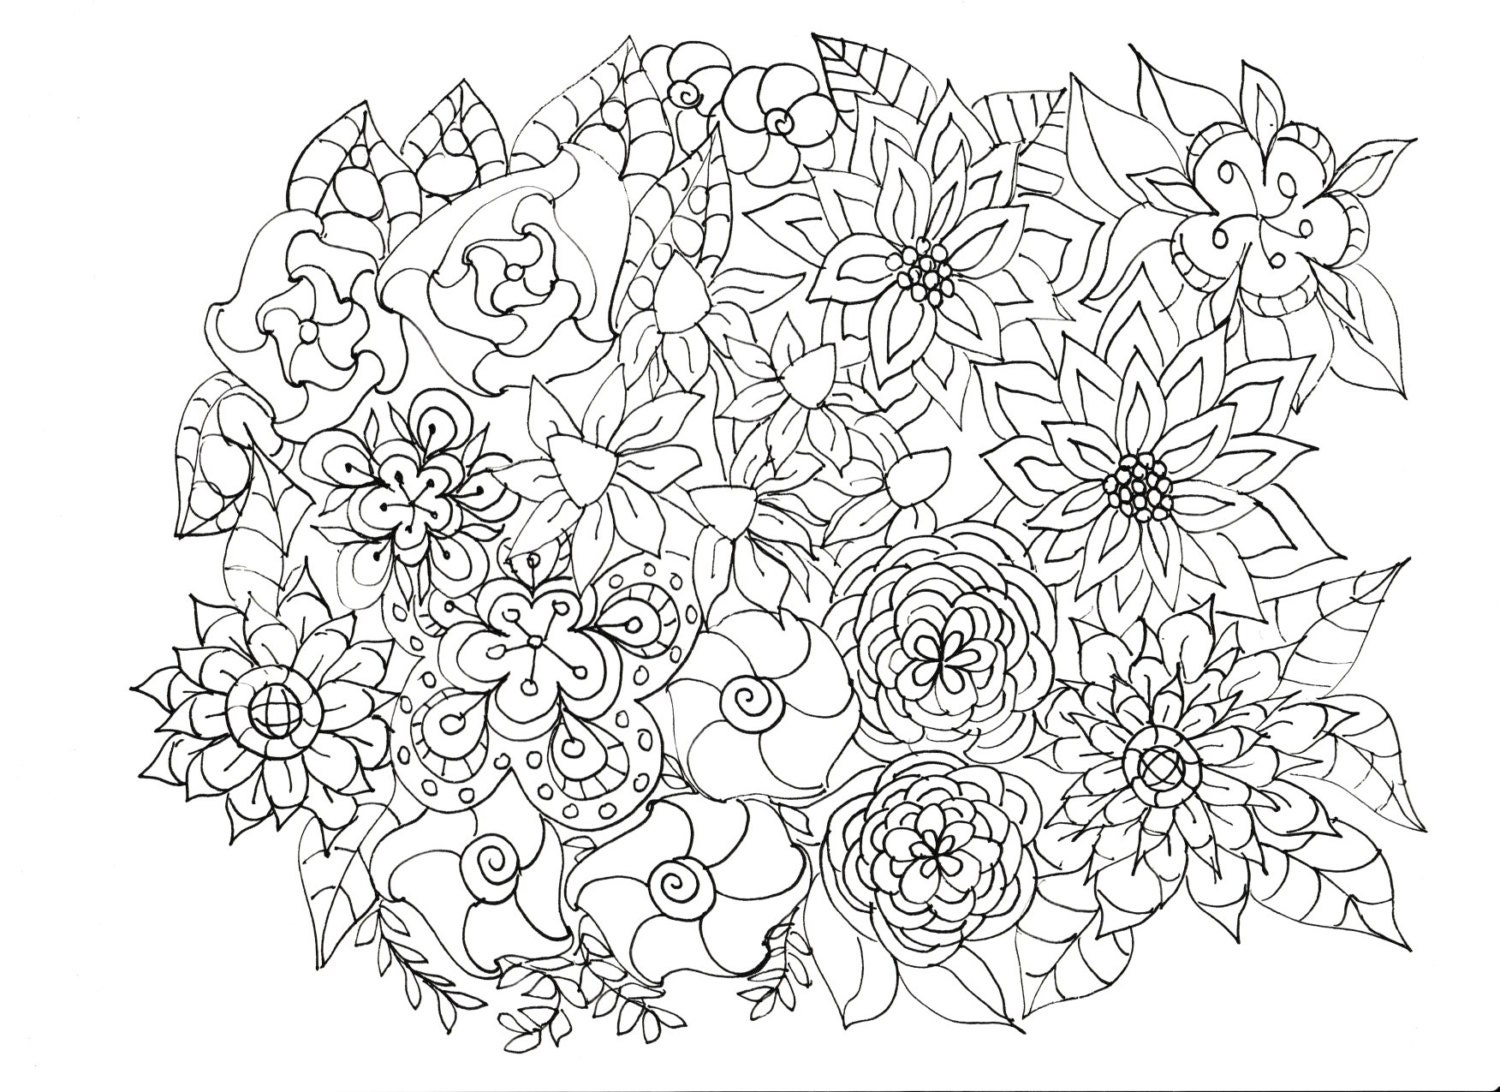 plants coloring pages Adult Coloring Pages Flowers, Plants, Garden plants coloring pages